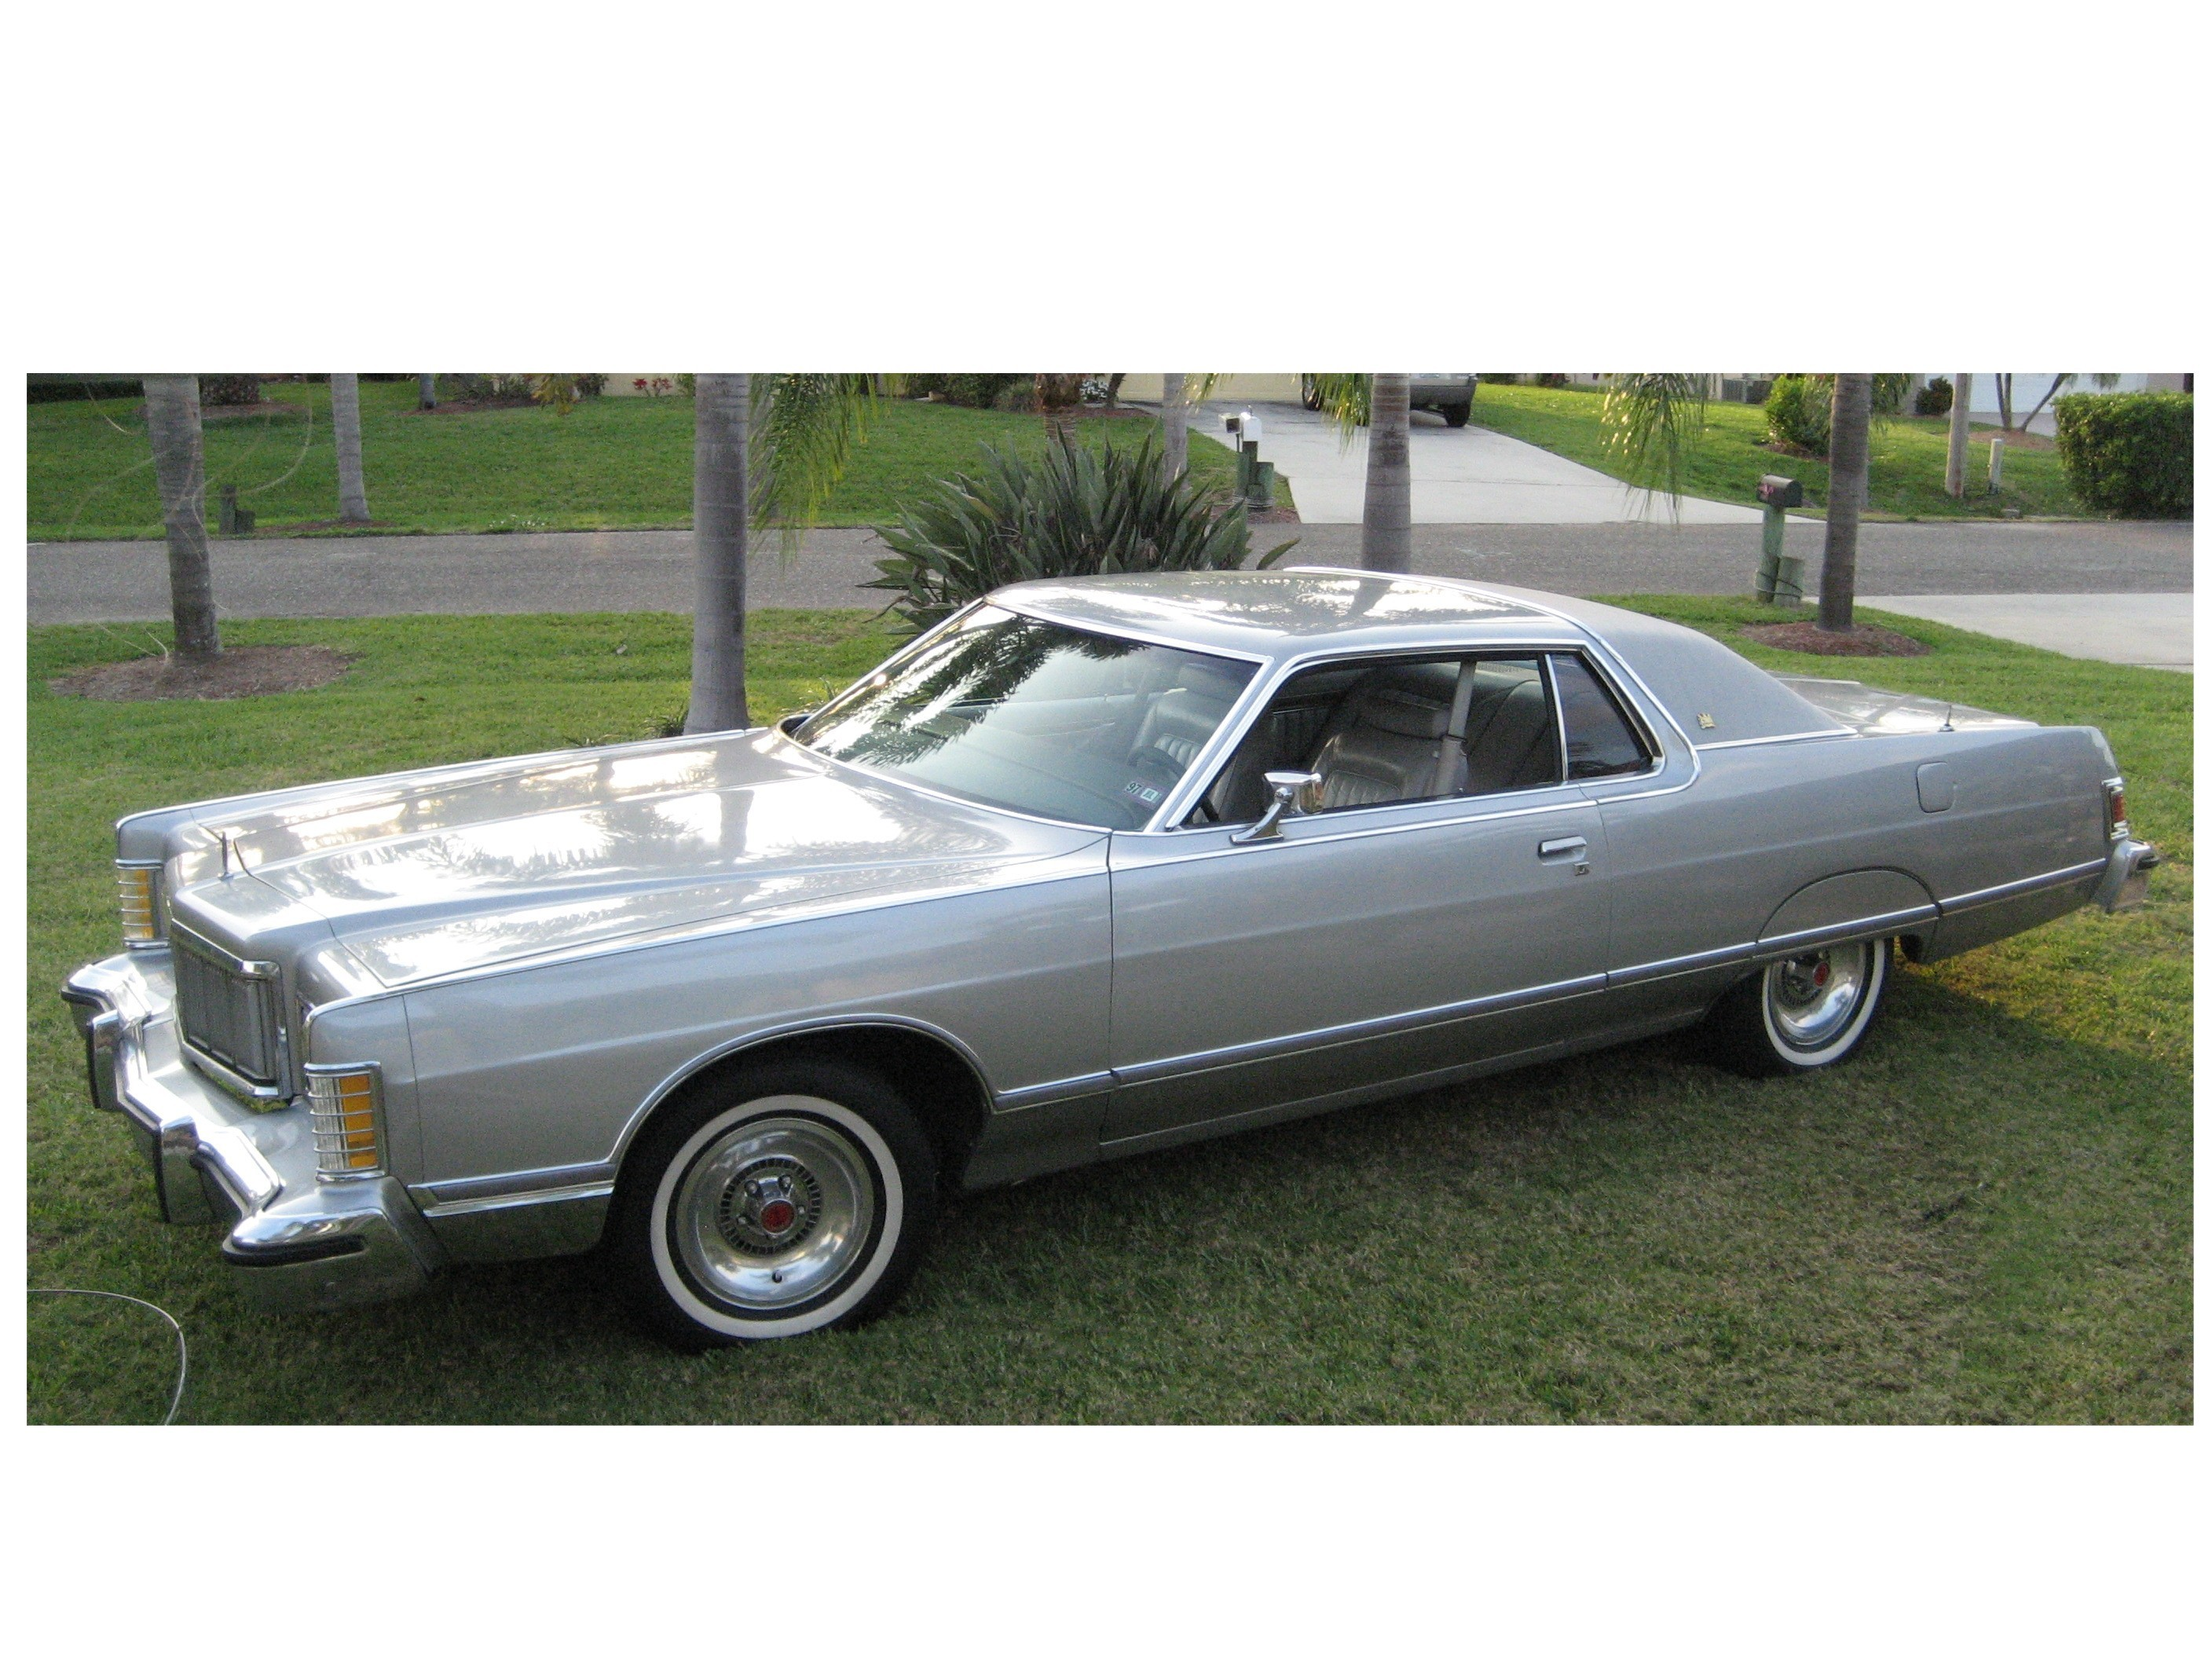 56FairlaneMan's 1978 Mercury Grand Marquis